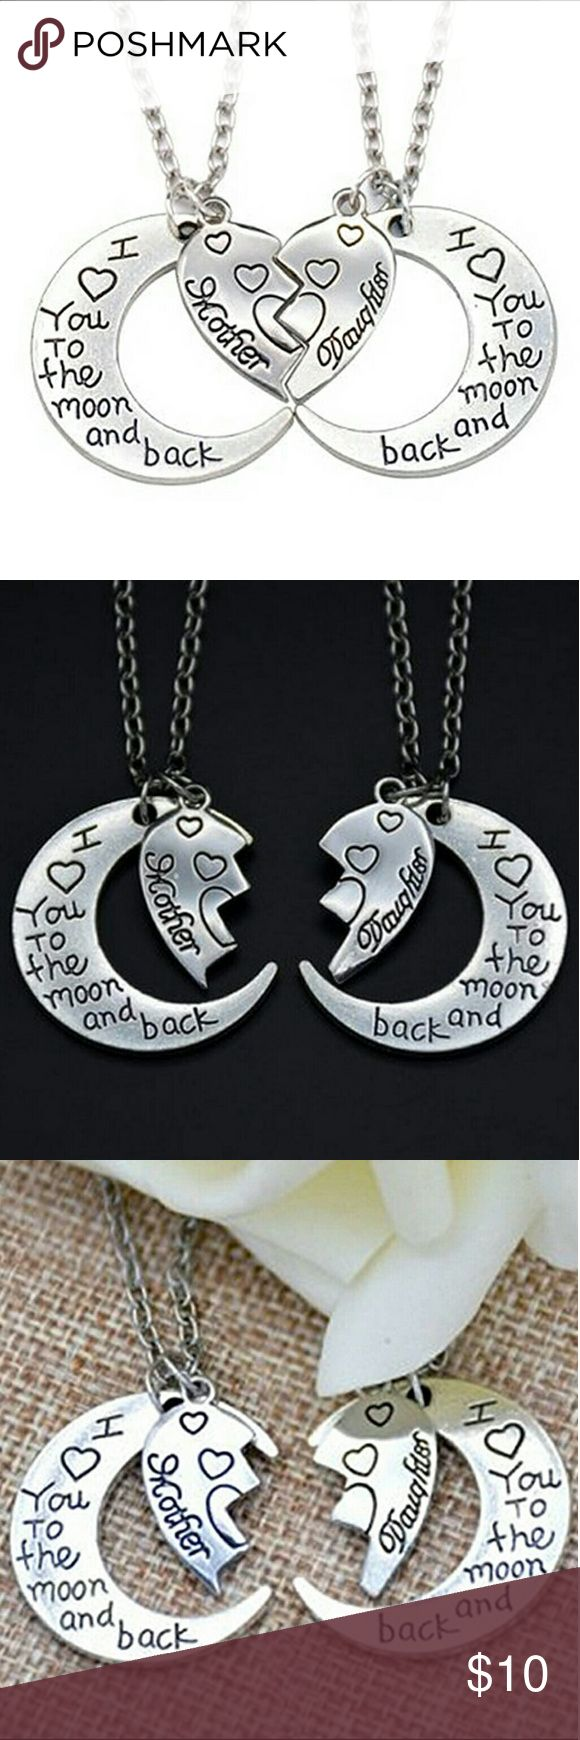 """*2 Pc Set* Mother Daughter Necklaces Family Girls 2 piece set of necklaces, perfect as a mother's day gift :) Both have a crescent moon pendant that says """" I love you to the moon and back """", and a broken / interlocking heart, one says mother, one says daughter. Both on a 17"""" adjustable chain with lobster claw closure. Jewelry Necklaces"""